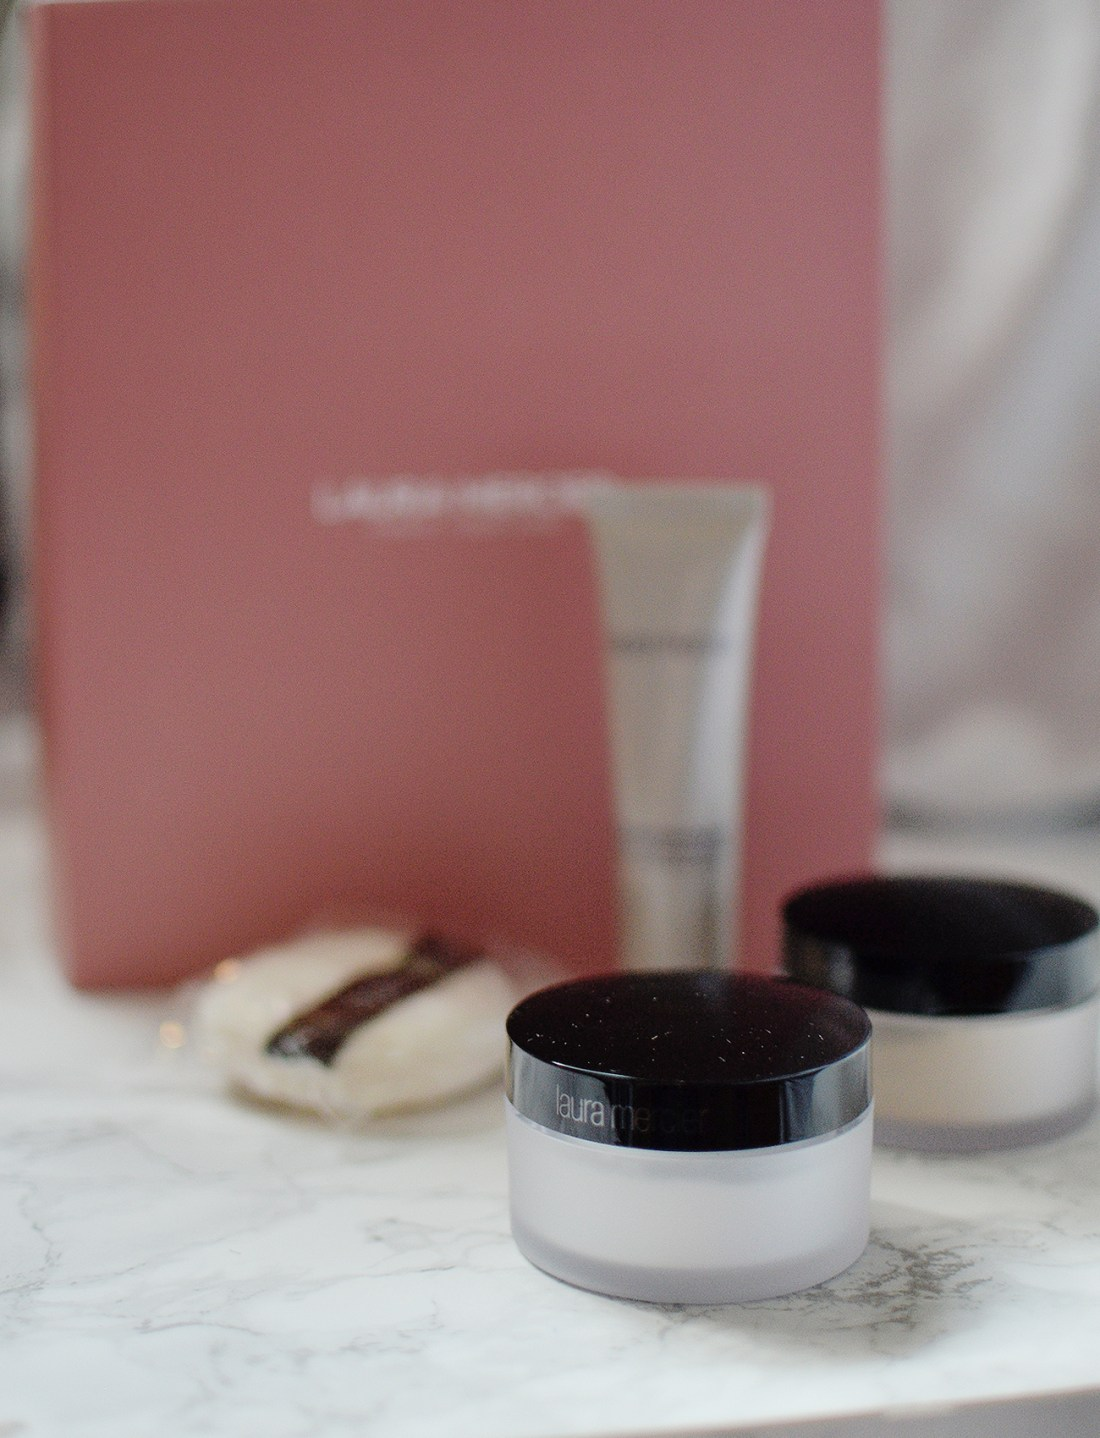 The Laura Mercier Prime & Perfect Set is a Nordstrom exclusive value kit that is really awesome bargain and here is my review on the included items!